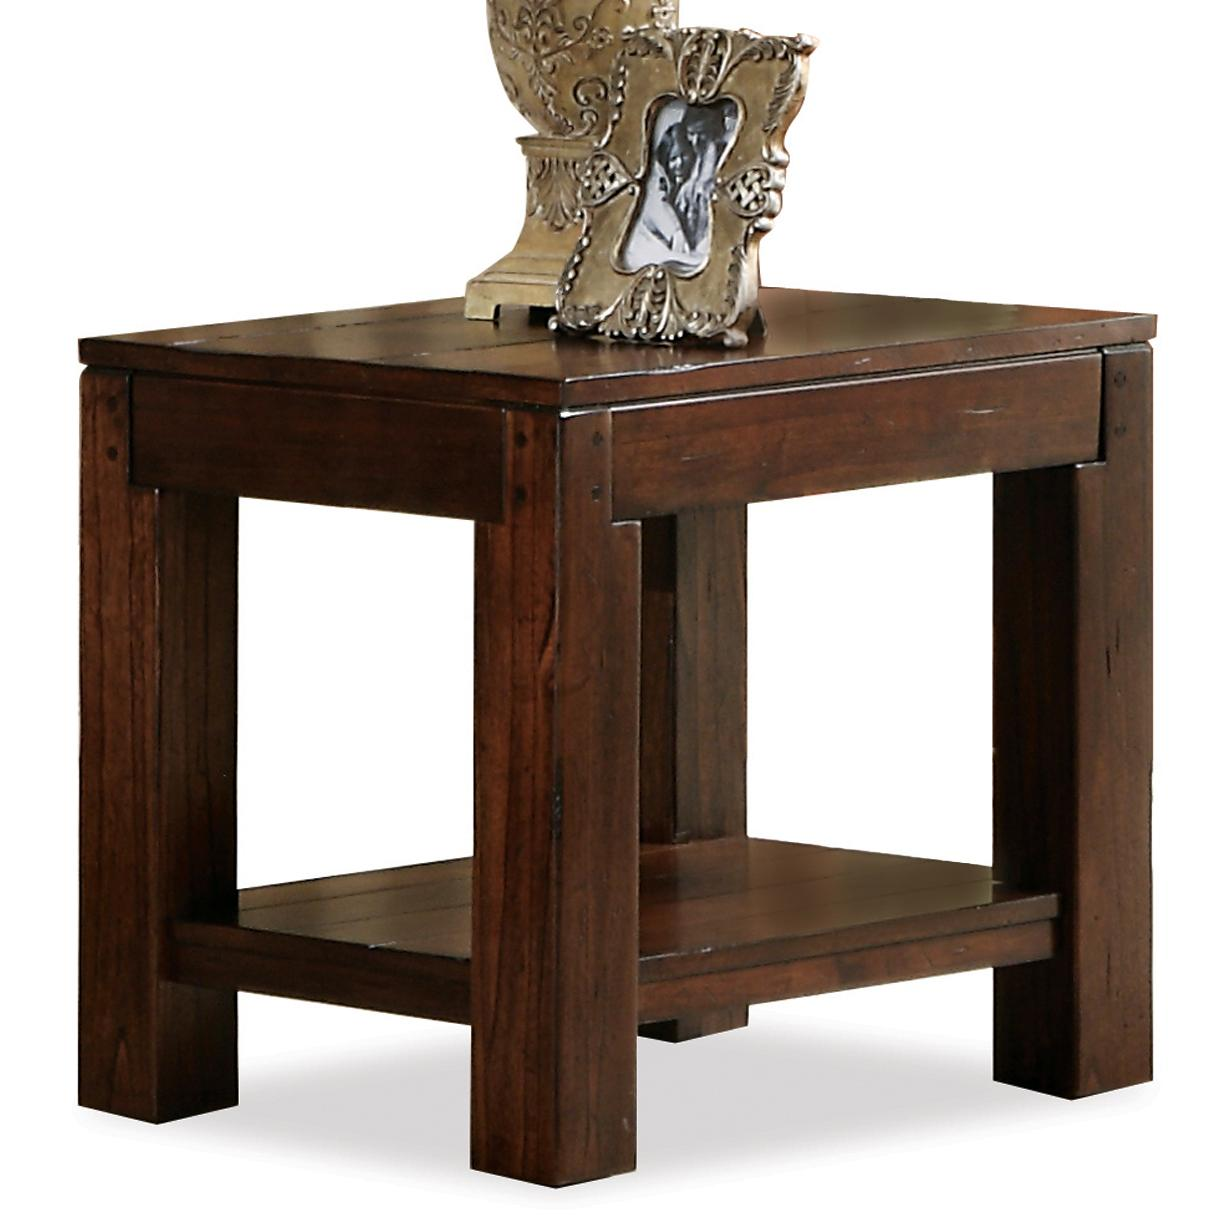 Riverside Furniture Castlewood End Table - Item Number: 335-12